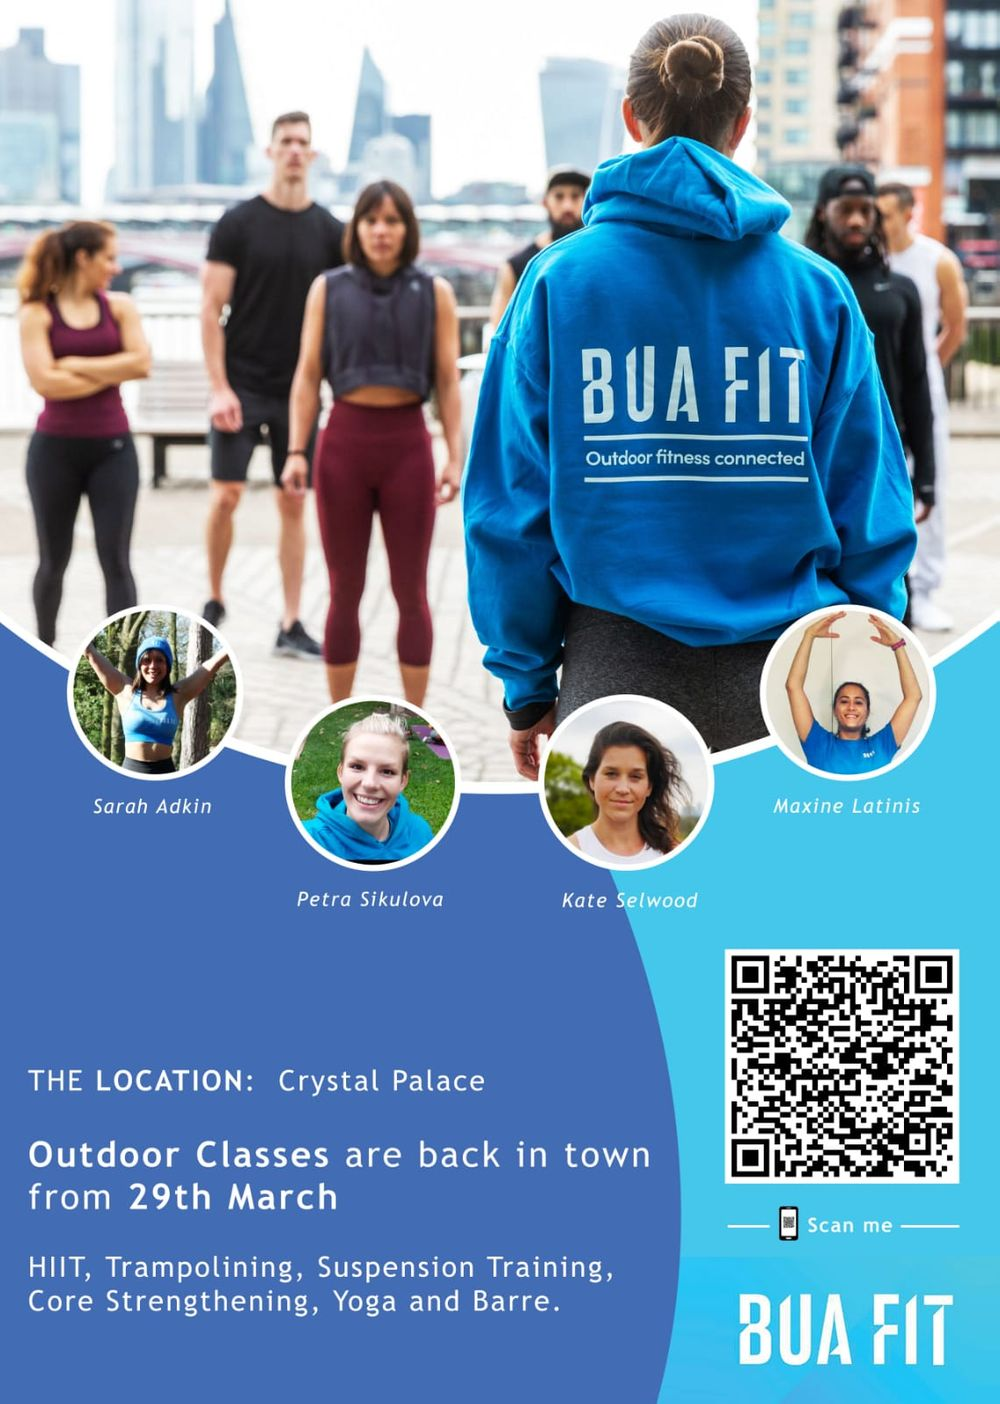 Very excited that we can now do group exercise outdoors again! To celebrate this we are doing a special event this coming Saturday in Crystal Palace Park.